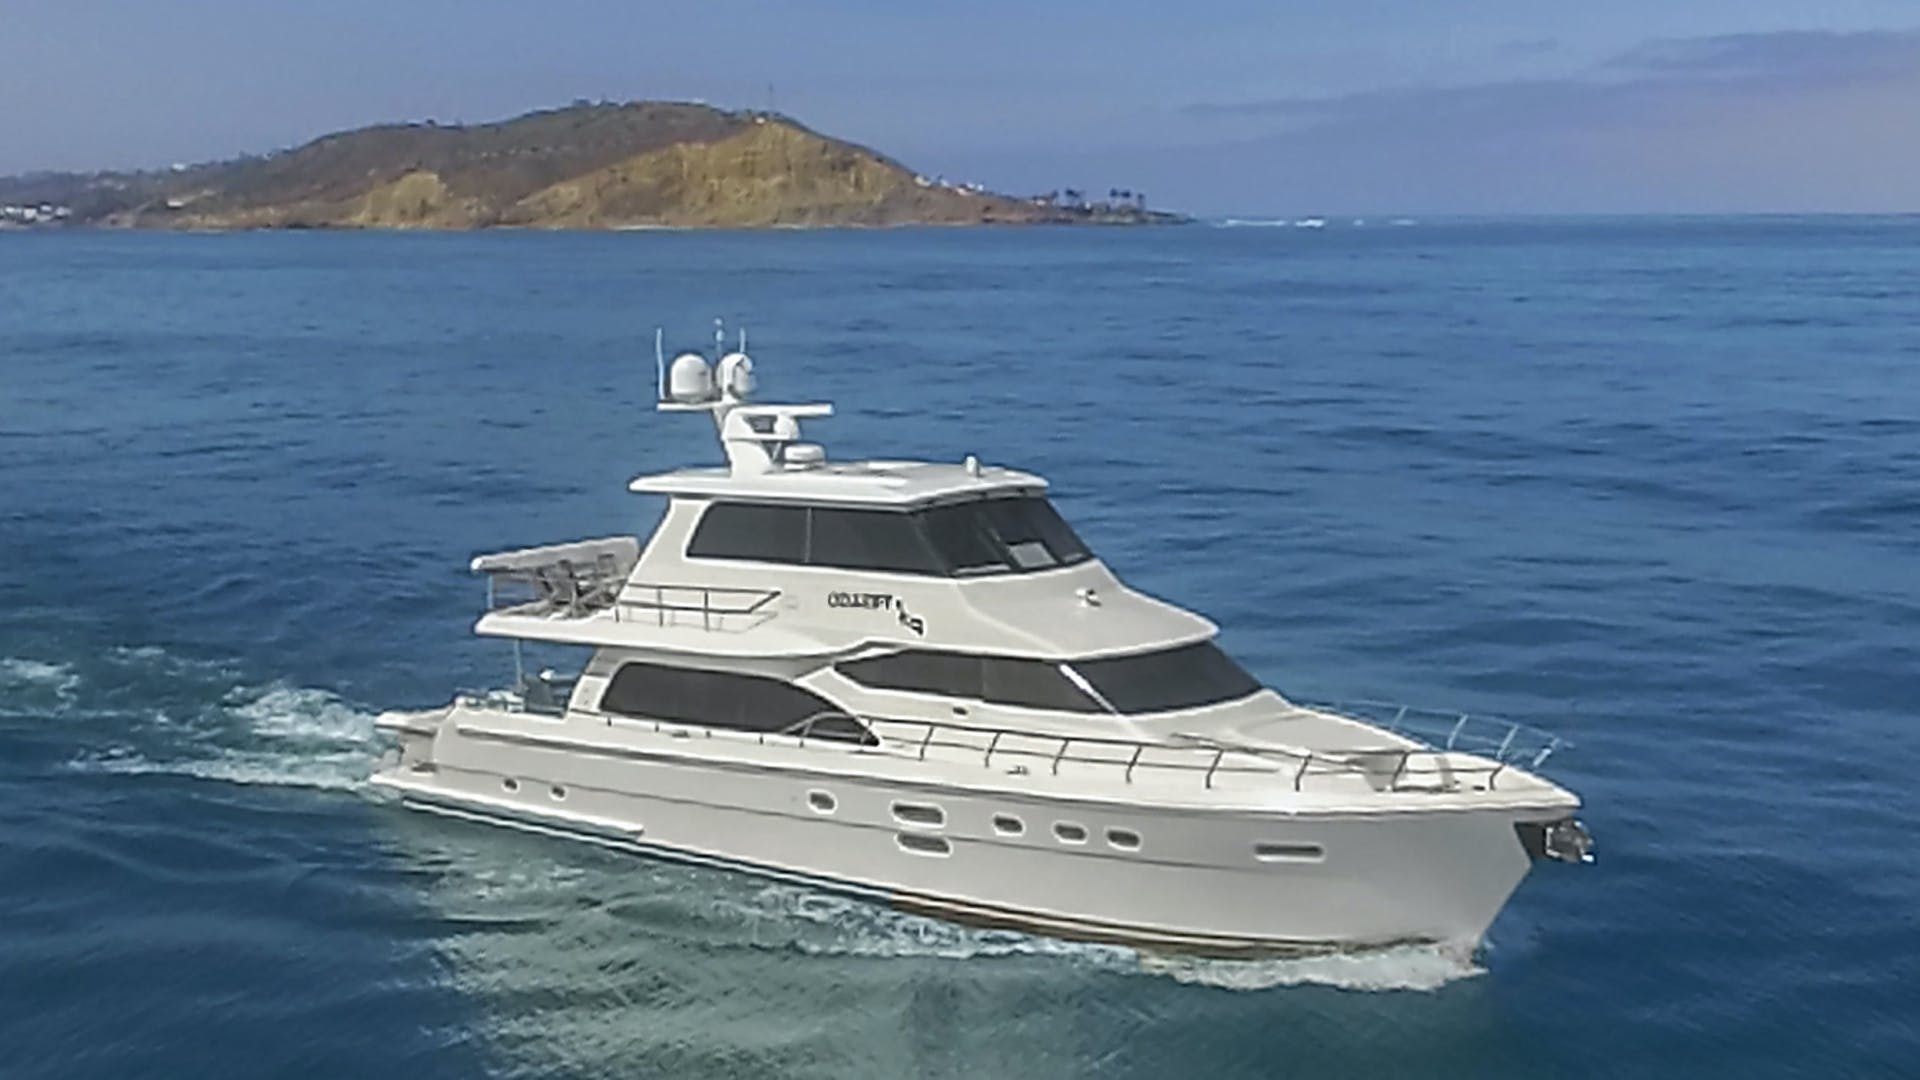 2014 Hampton 76' 76' Skylounge Motoryacht ODYSEA | Picture 2 of 55